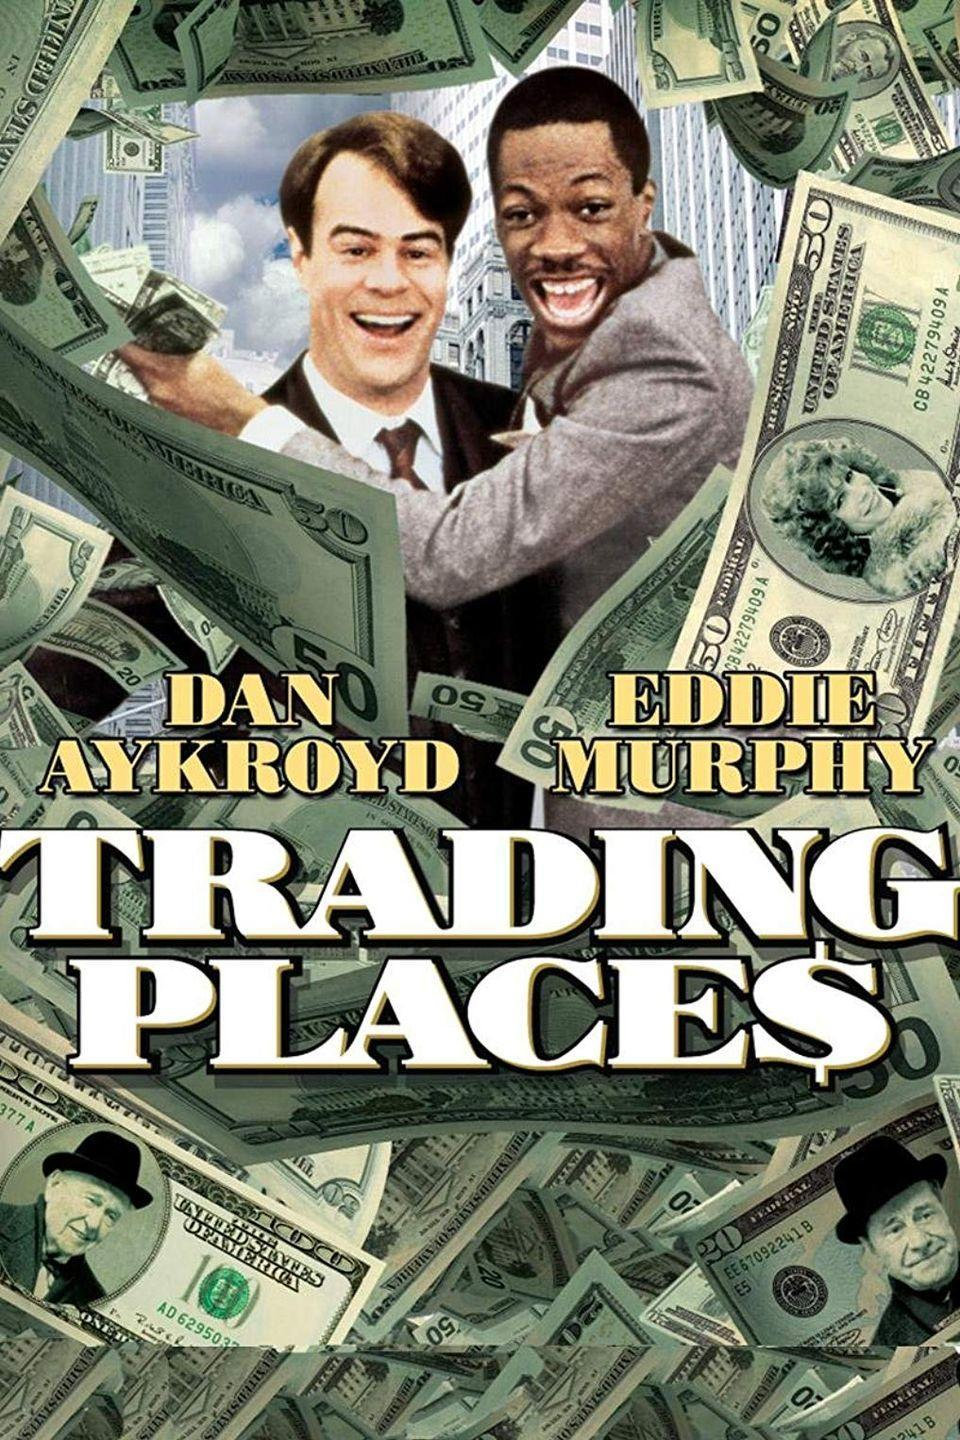 """<p>This modernized version of Mark Twain's <em>The Prince and The Pauper</em> is set during the holidays and stars Dan Aykroyd and Eddie Murphy.</p><p><a class=""""link rapid-noclick-resp"""" href=""""https://www.amazon.com/Trading-Places-Denholm-Elliott/dp/B00119XQHI/?tag=syn-yahoo-20&ascsubtag=%5Bartid%7C10055.g.1315%5Bsrc%7Cyahoo-us"""" rel=""""nofollow noopener"""" target=""""_blank"""" data-ylk=""""slk:WATCH NOW"""">WATCH NOW</a></p>"""